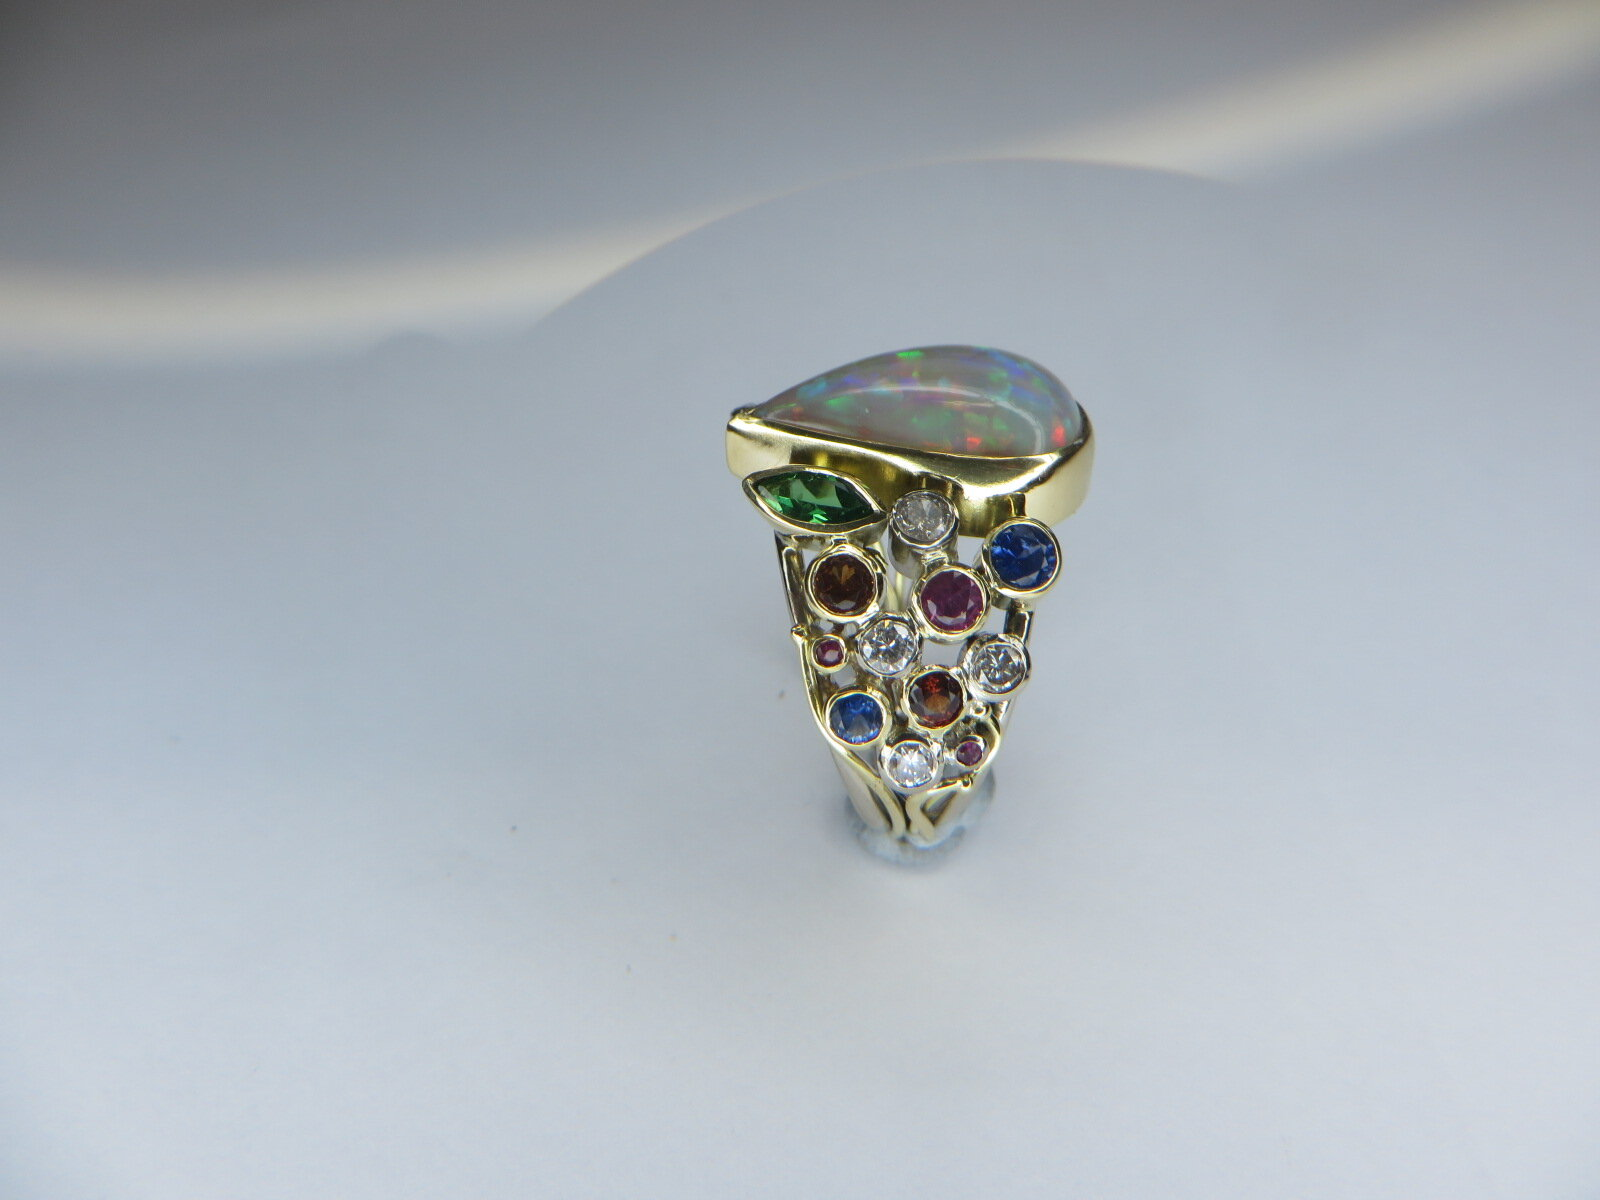 Side view showing off some of the Gemstones in this stunning piece.